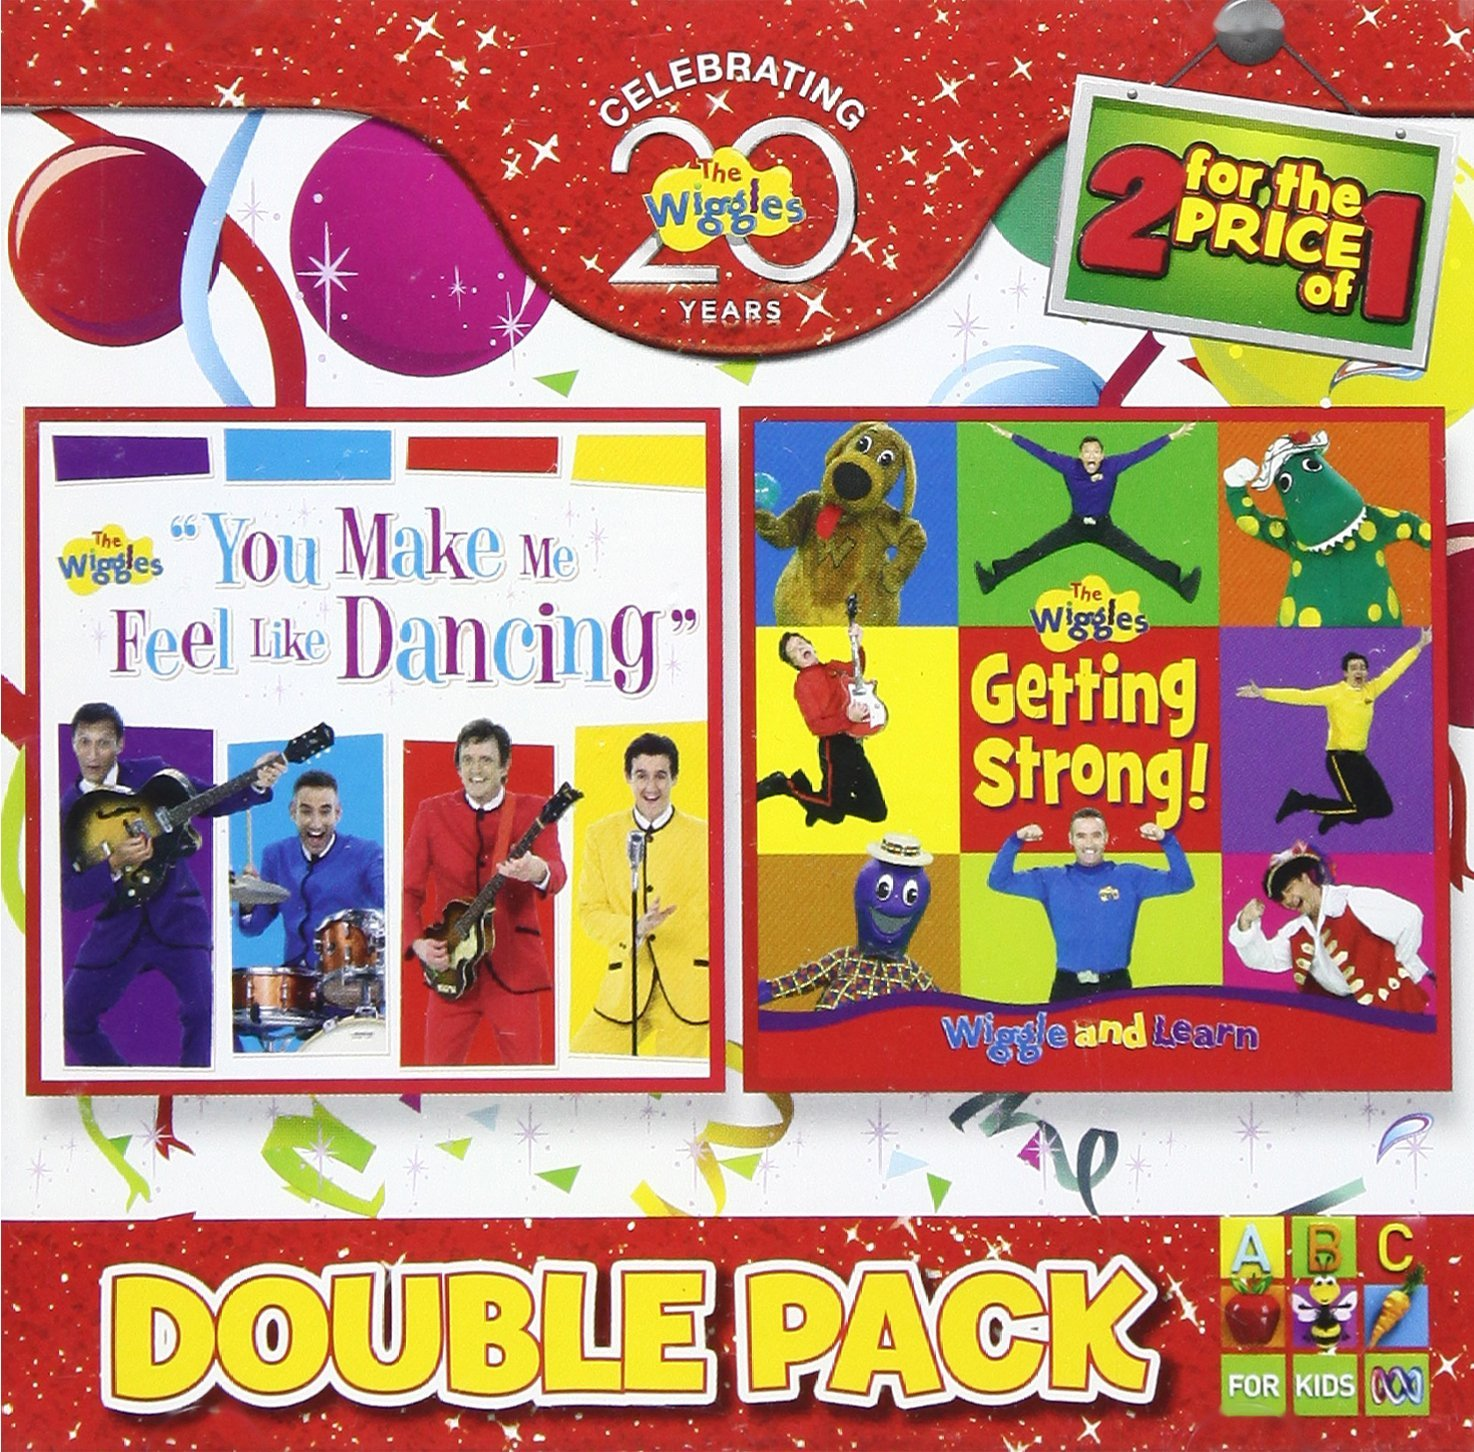 Double Pack: You Make Me Feel Like Dancing + Getting Strong!